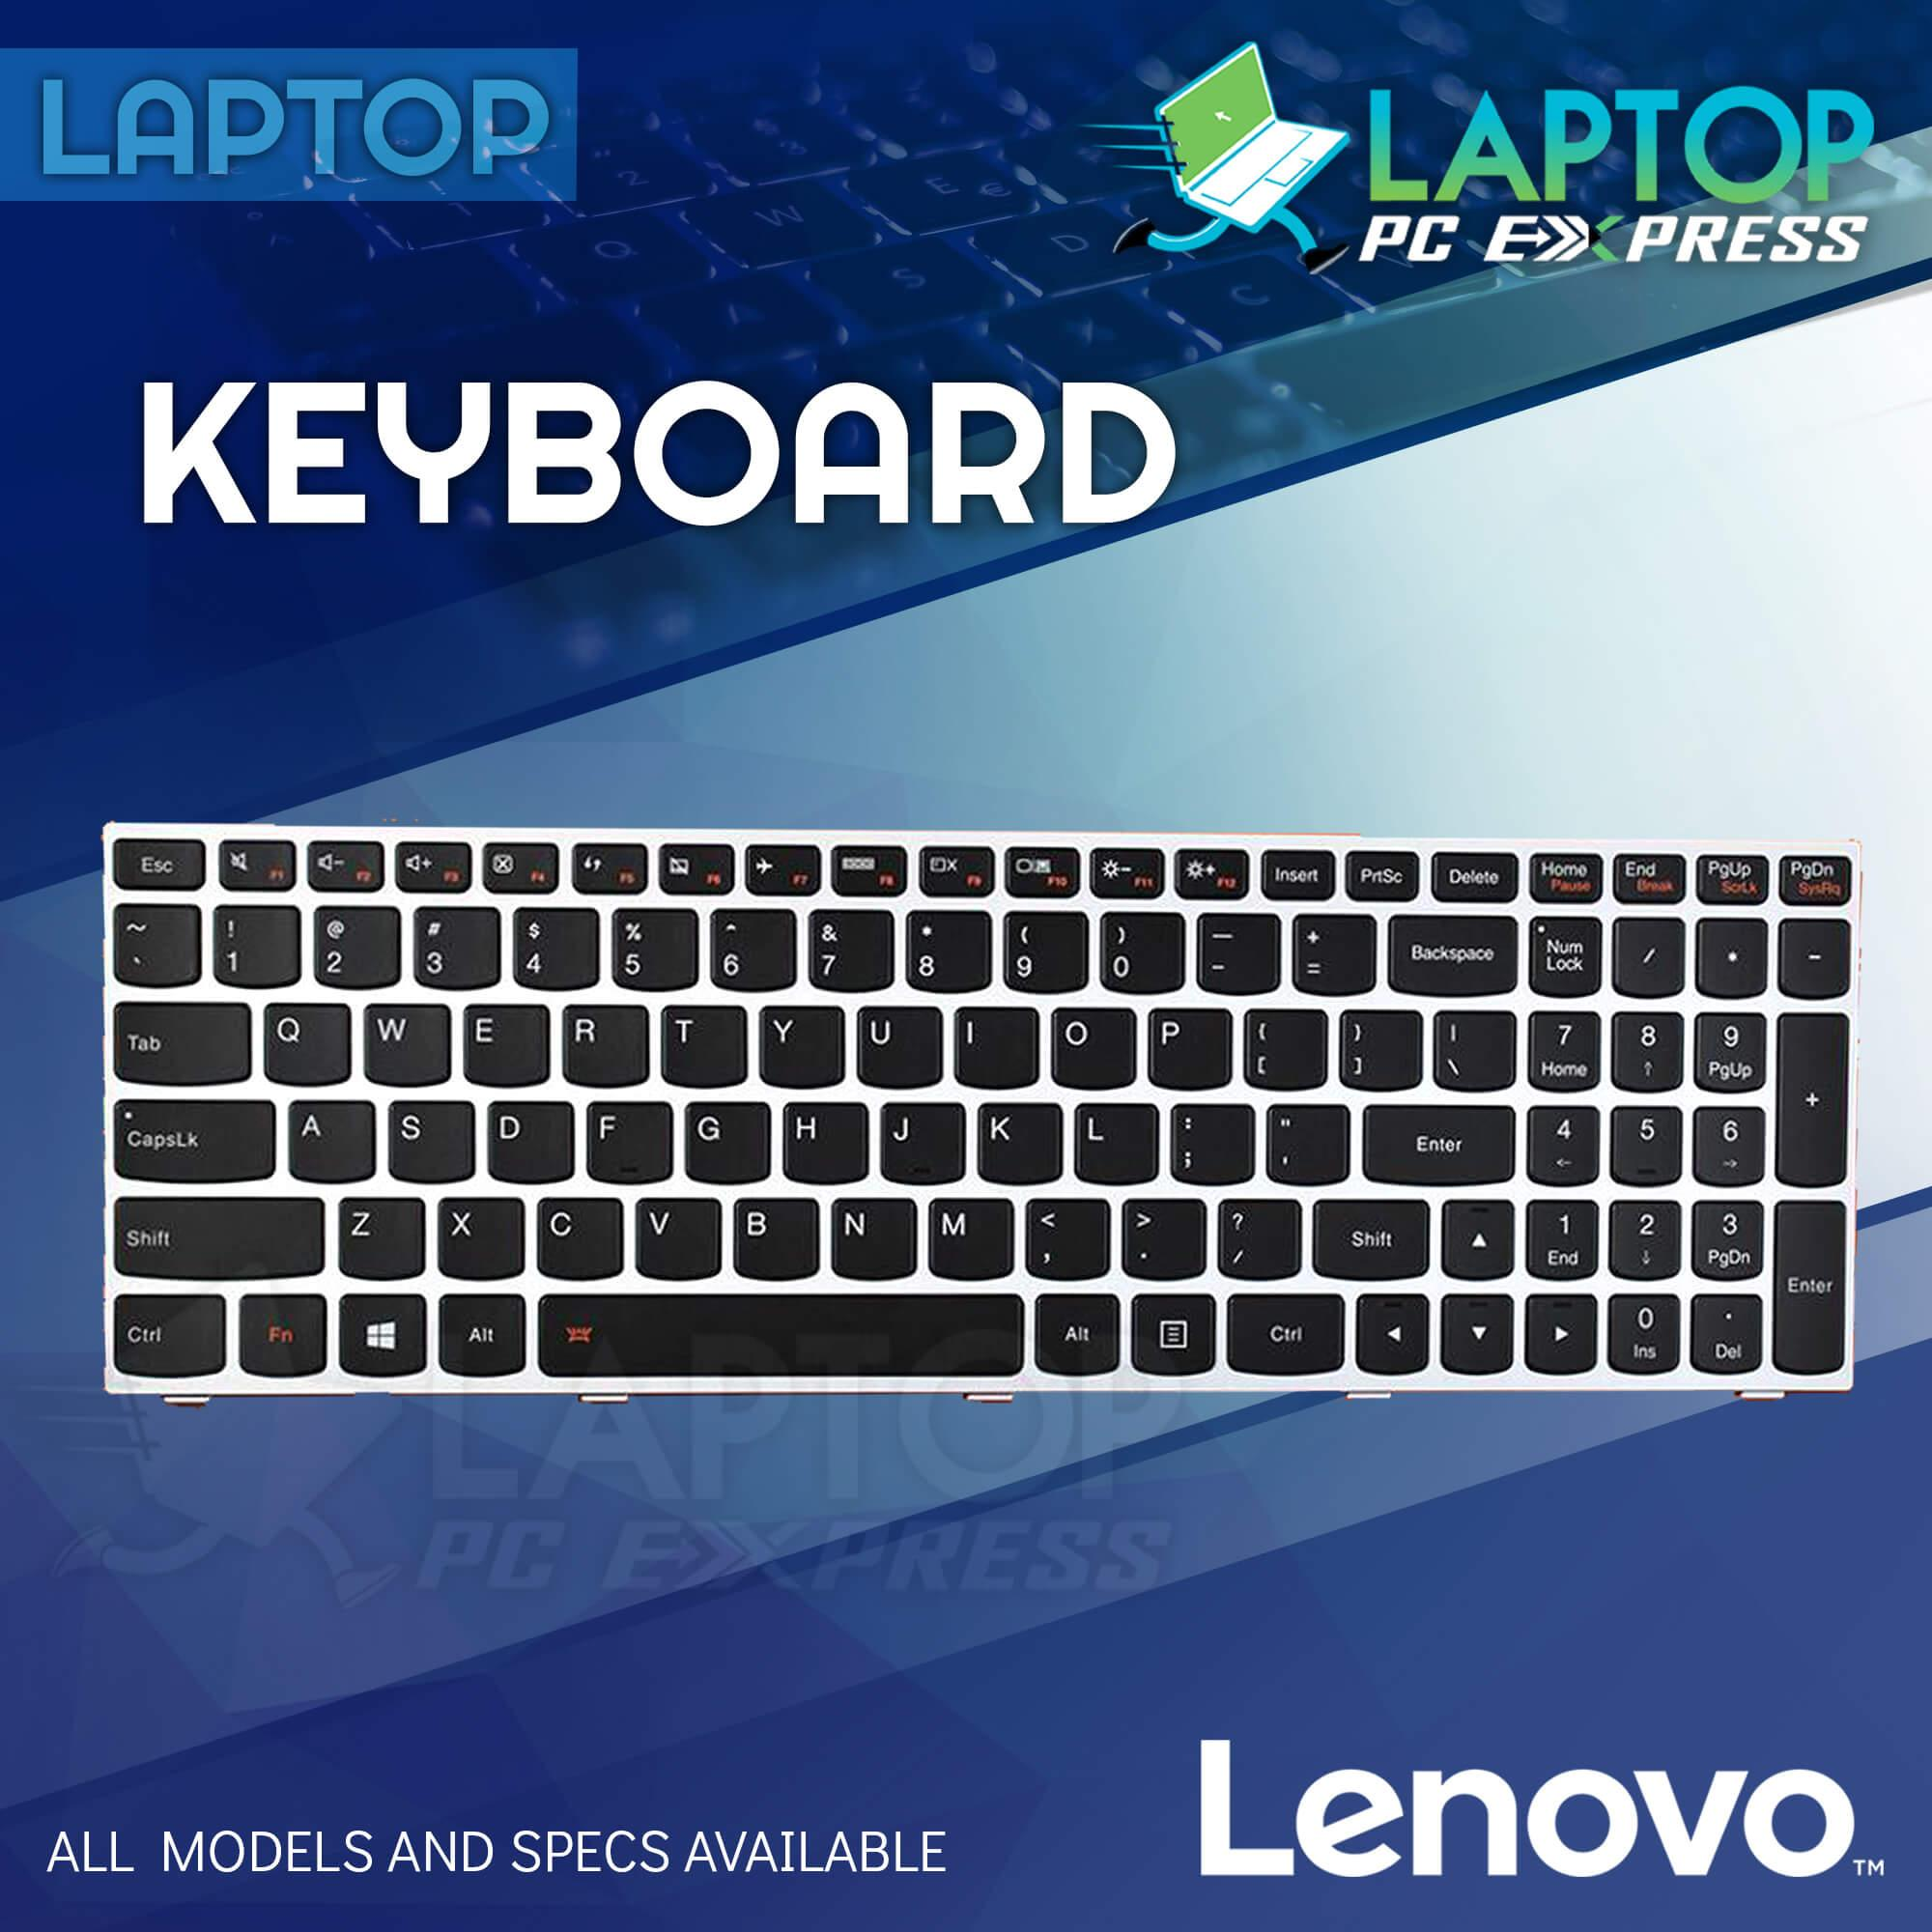 Lenovo Philippines Keyboard Laptop Ideapad G40 30 45 70 75 For P500 Z500g Z500 Touch Z500a With Silver Frame No